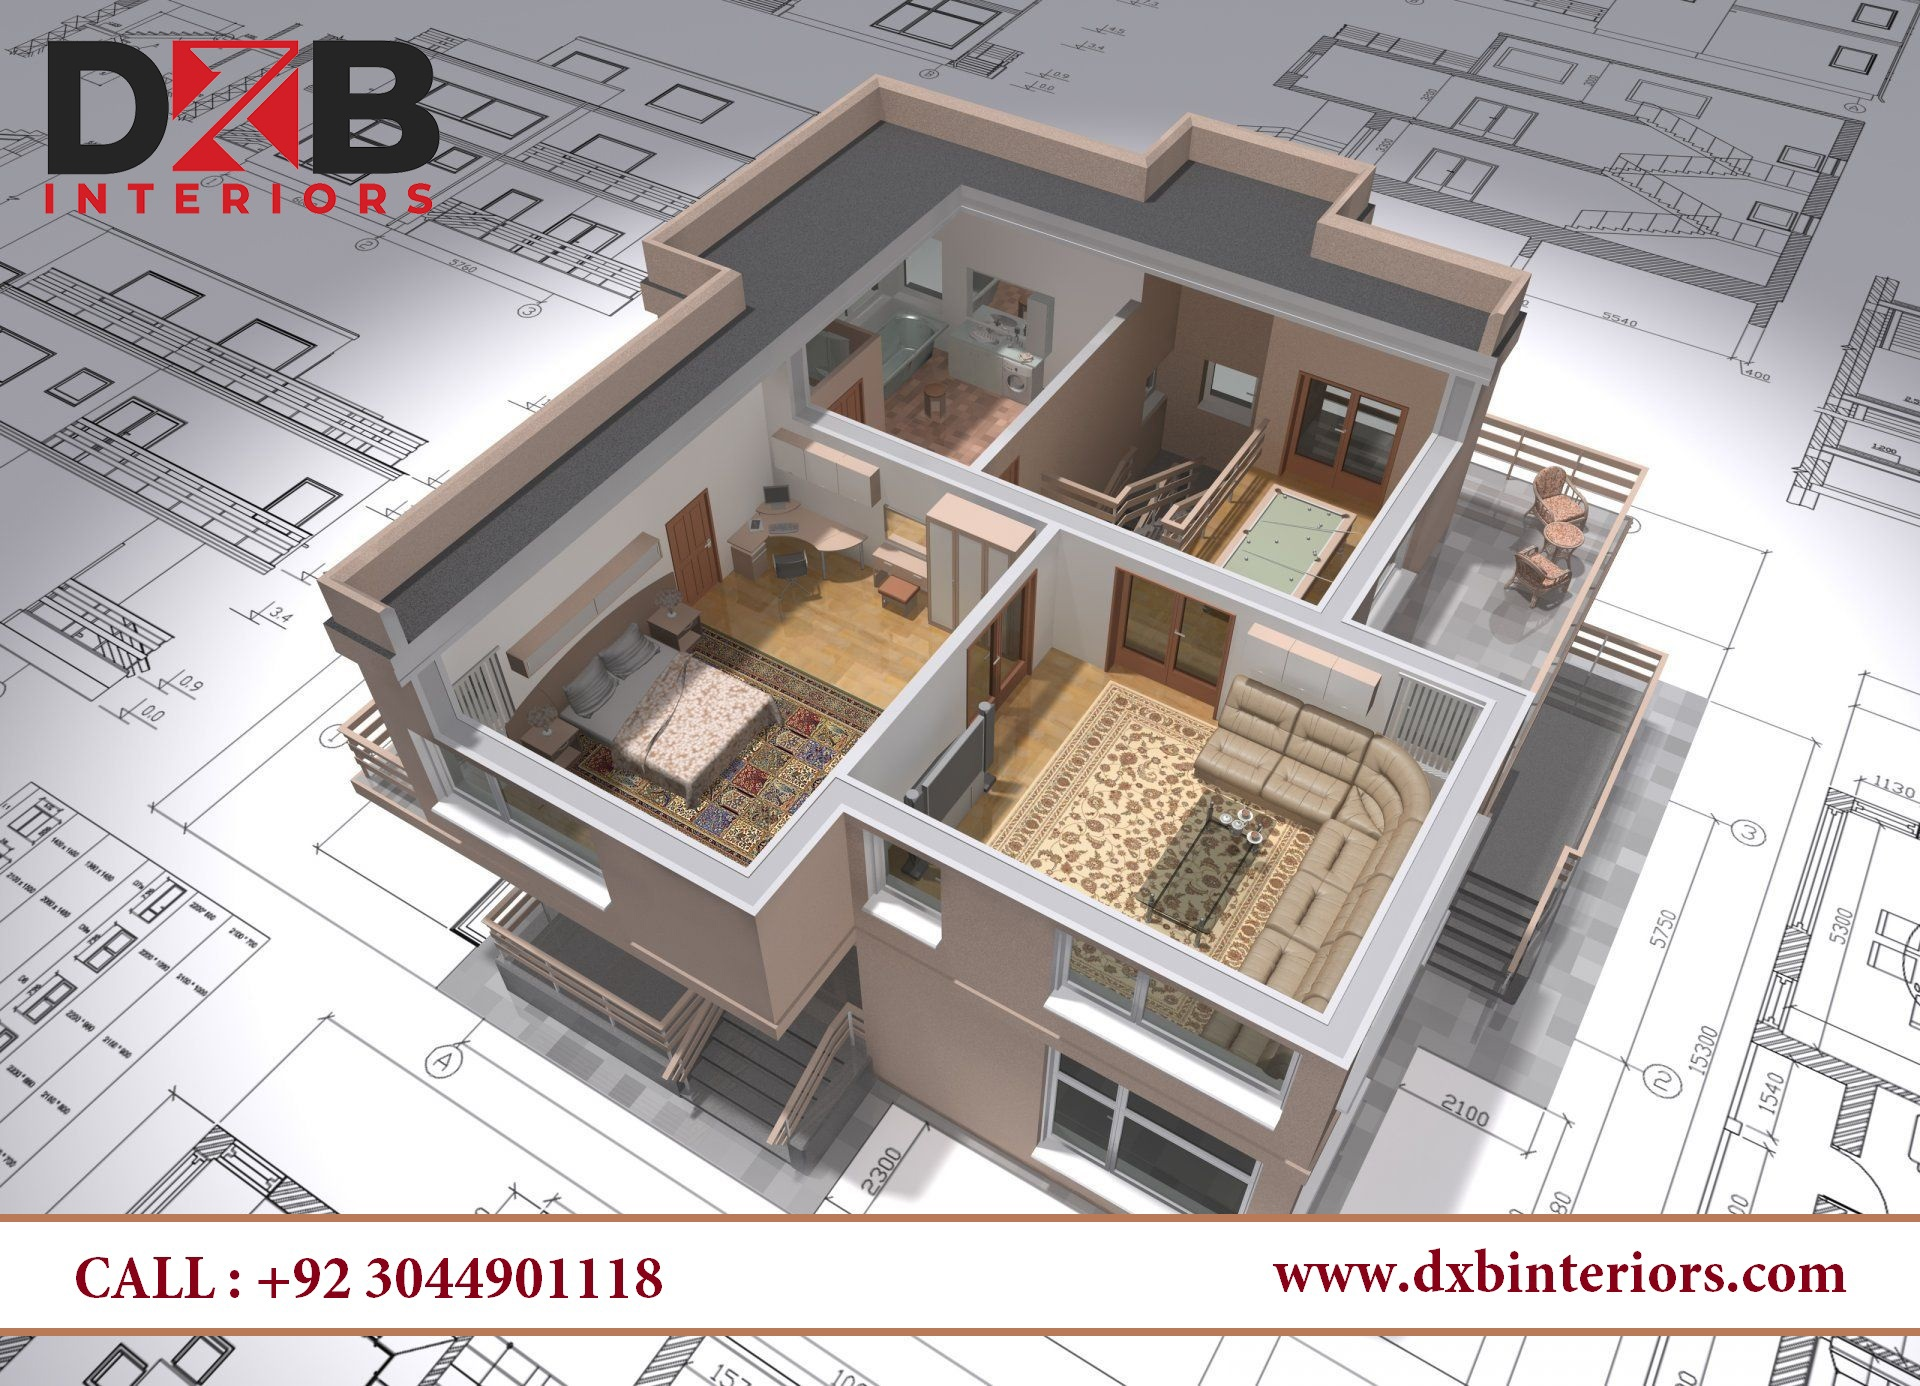 Architectural Residential Designers in Lahore, Islamabad | Architectural Designers